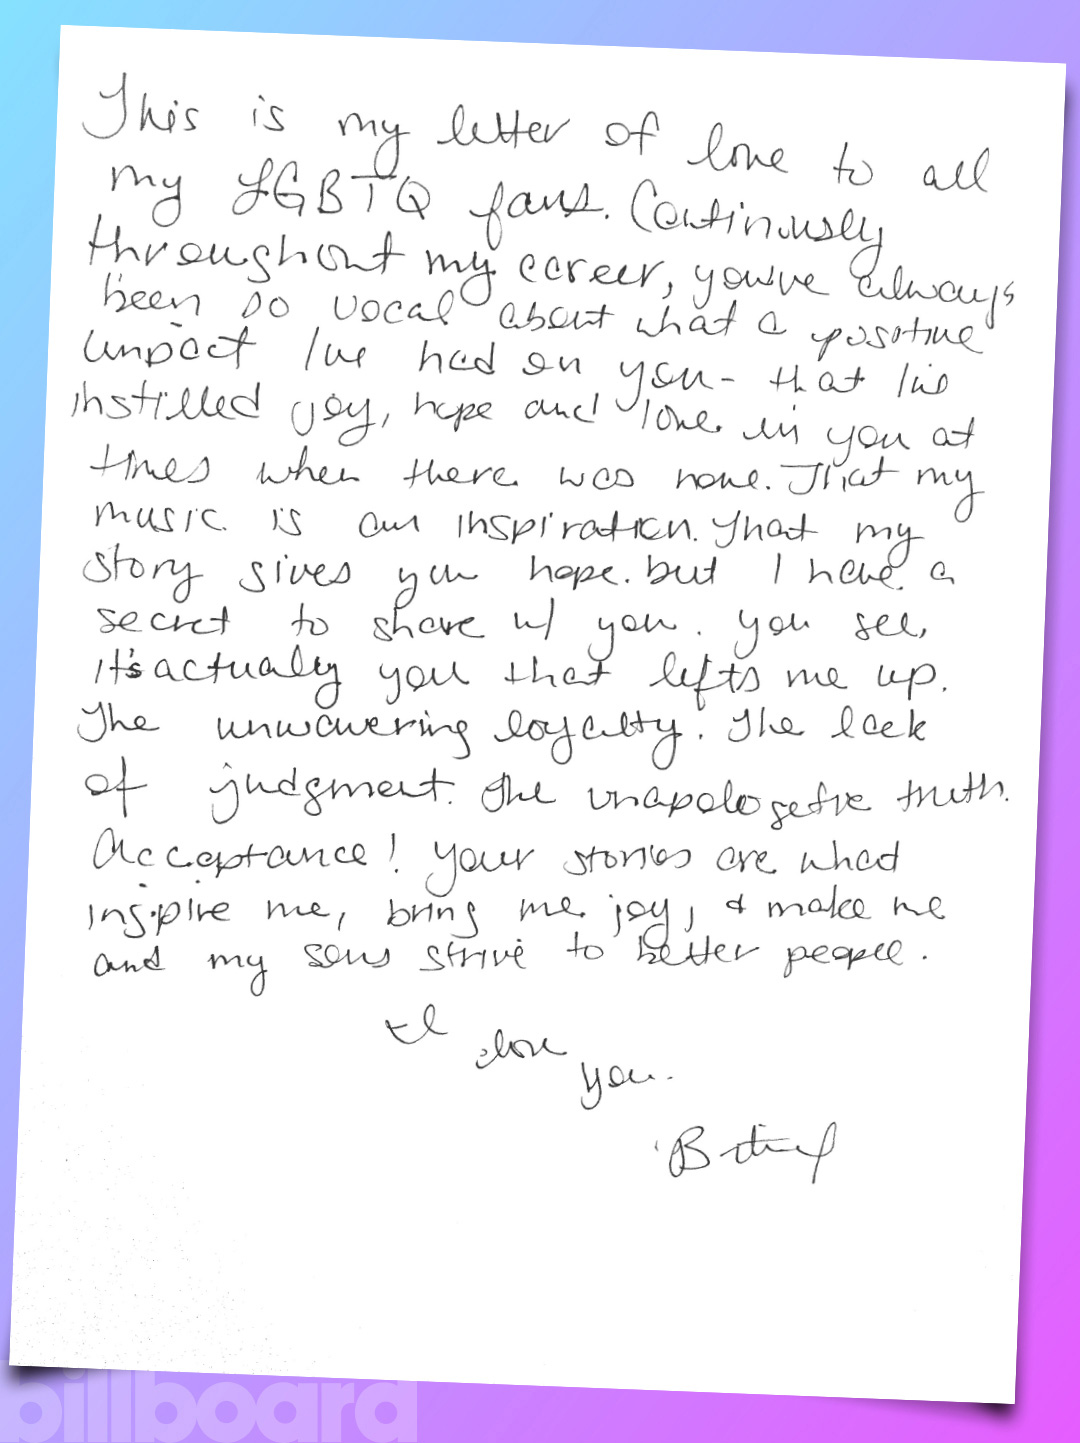 Below Pop Music Icon Britney Spears Shares Her Handwritten Note Read More Pride Month Love Letters Here